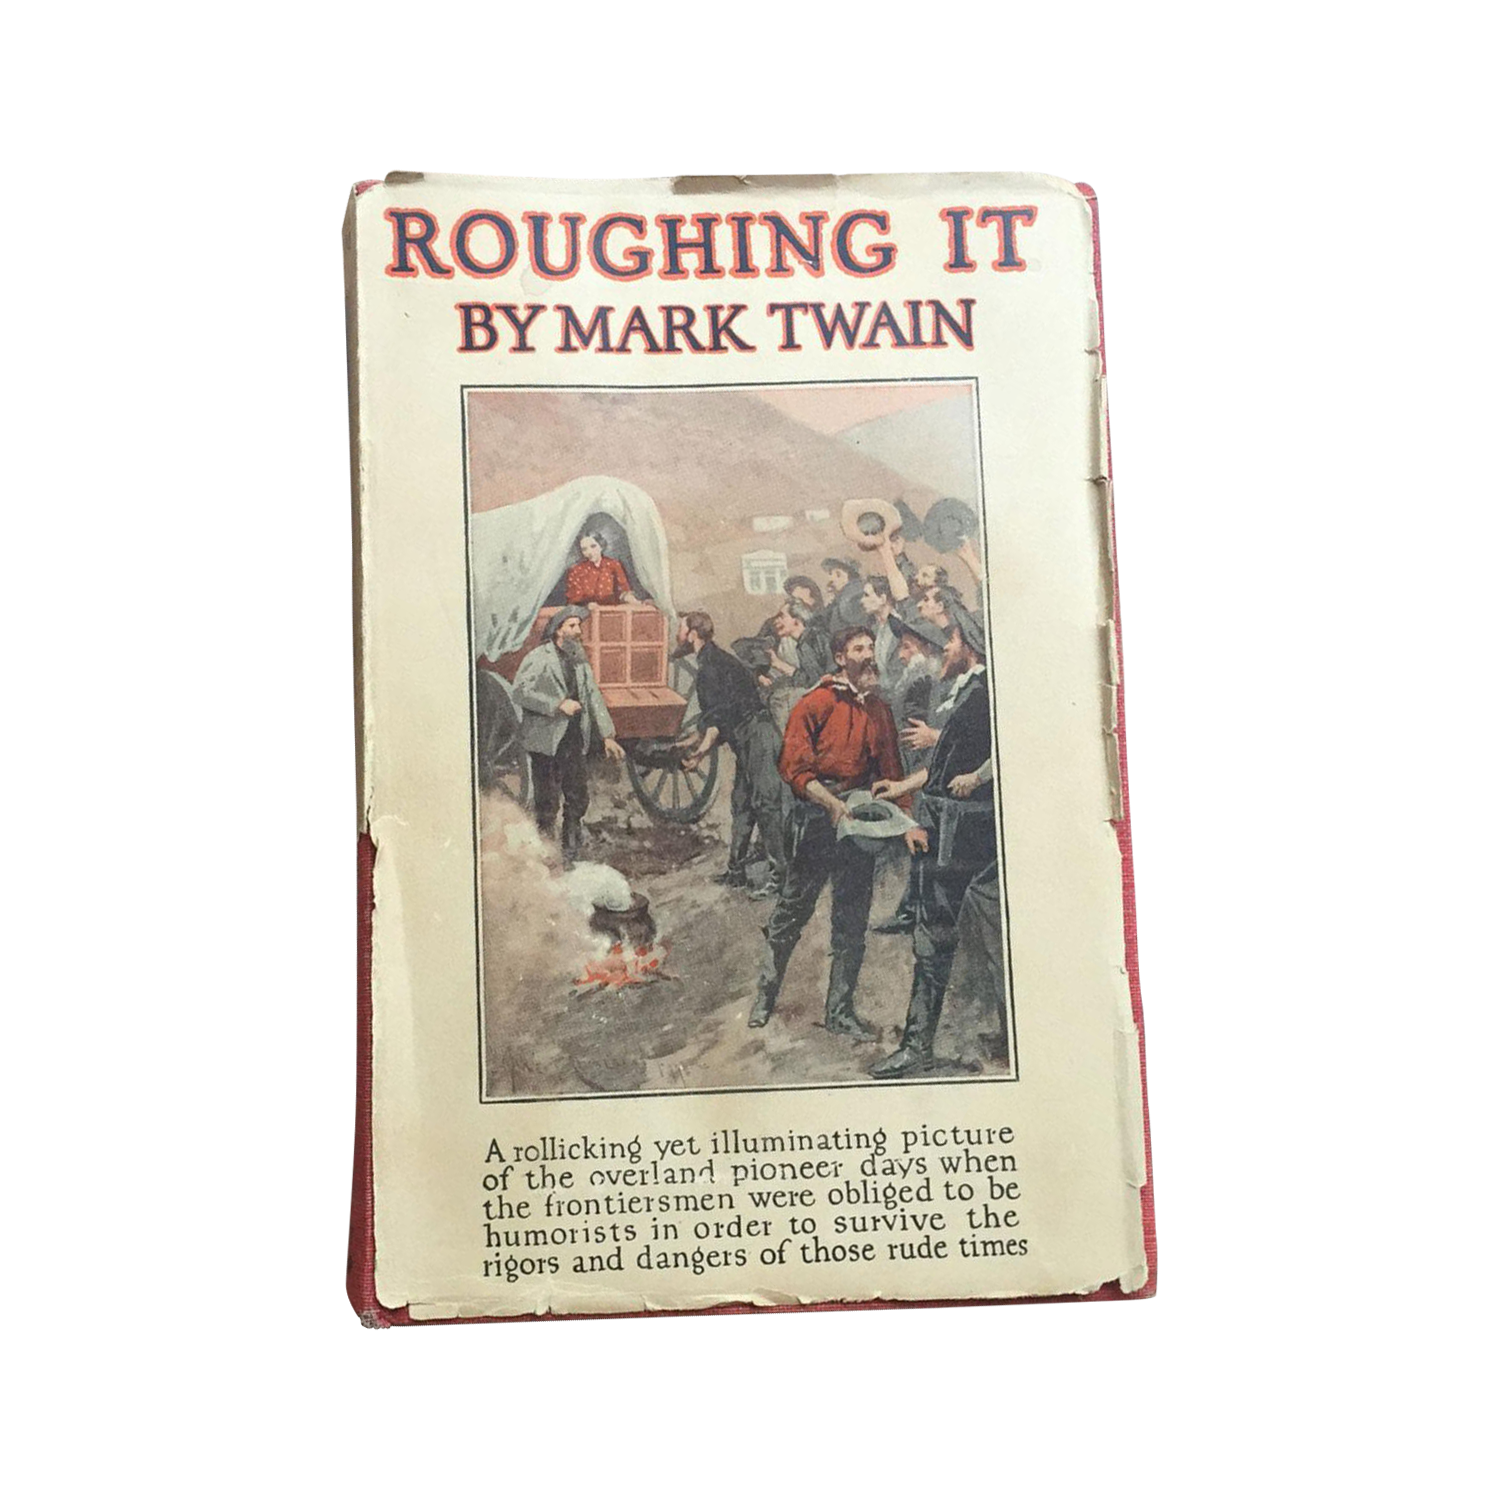 roughing it by mark twain Where and when was mark twain born what was mark twain's real name  find out interesting mark twain facts and quotes from the old farmer's almanac.